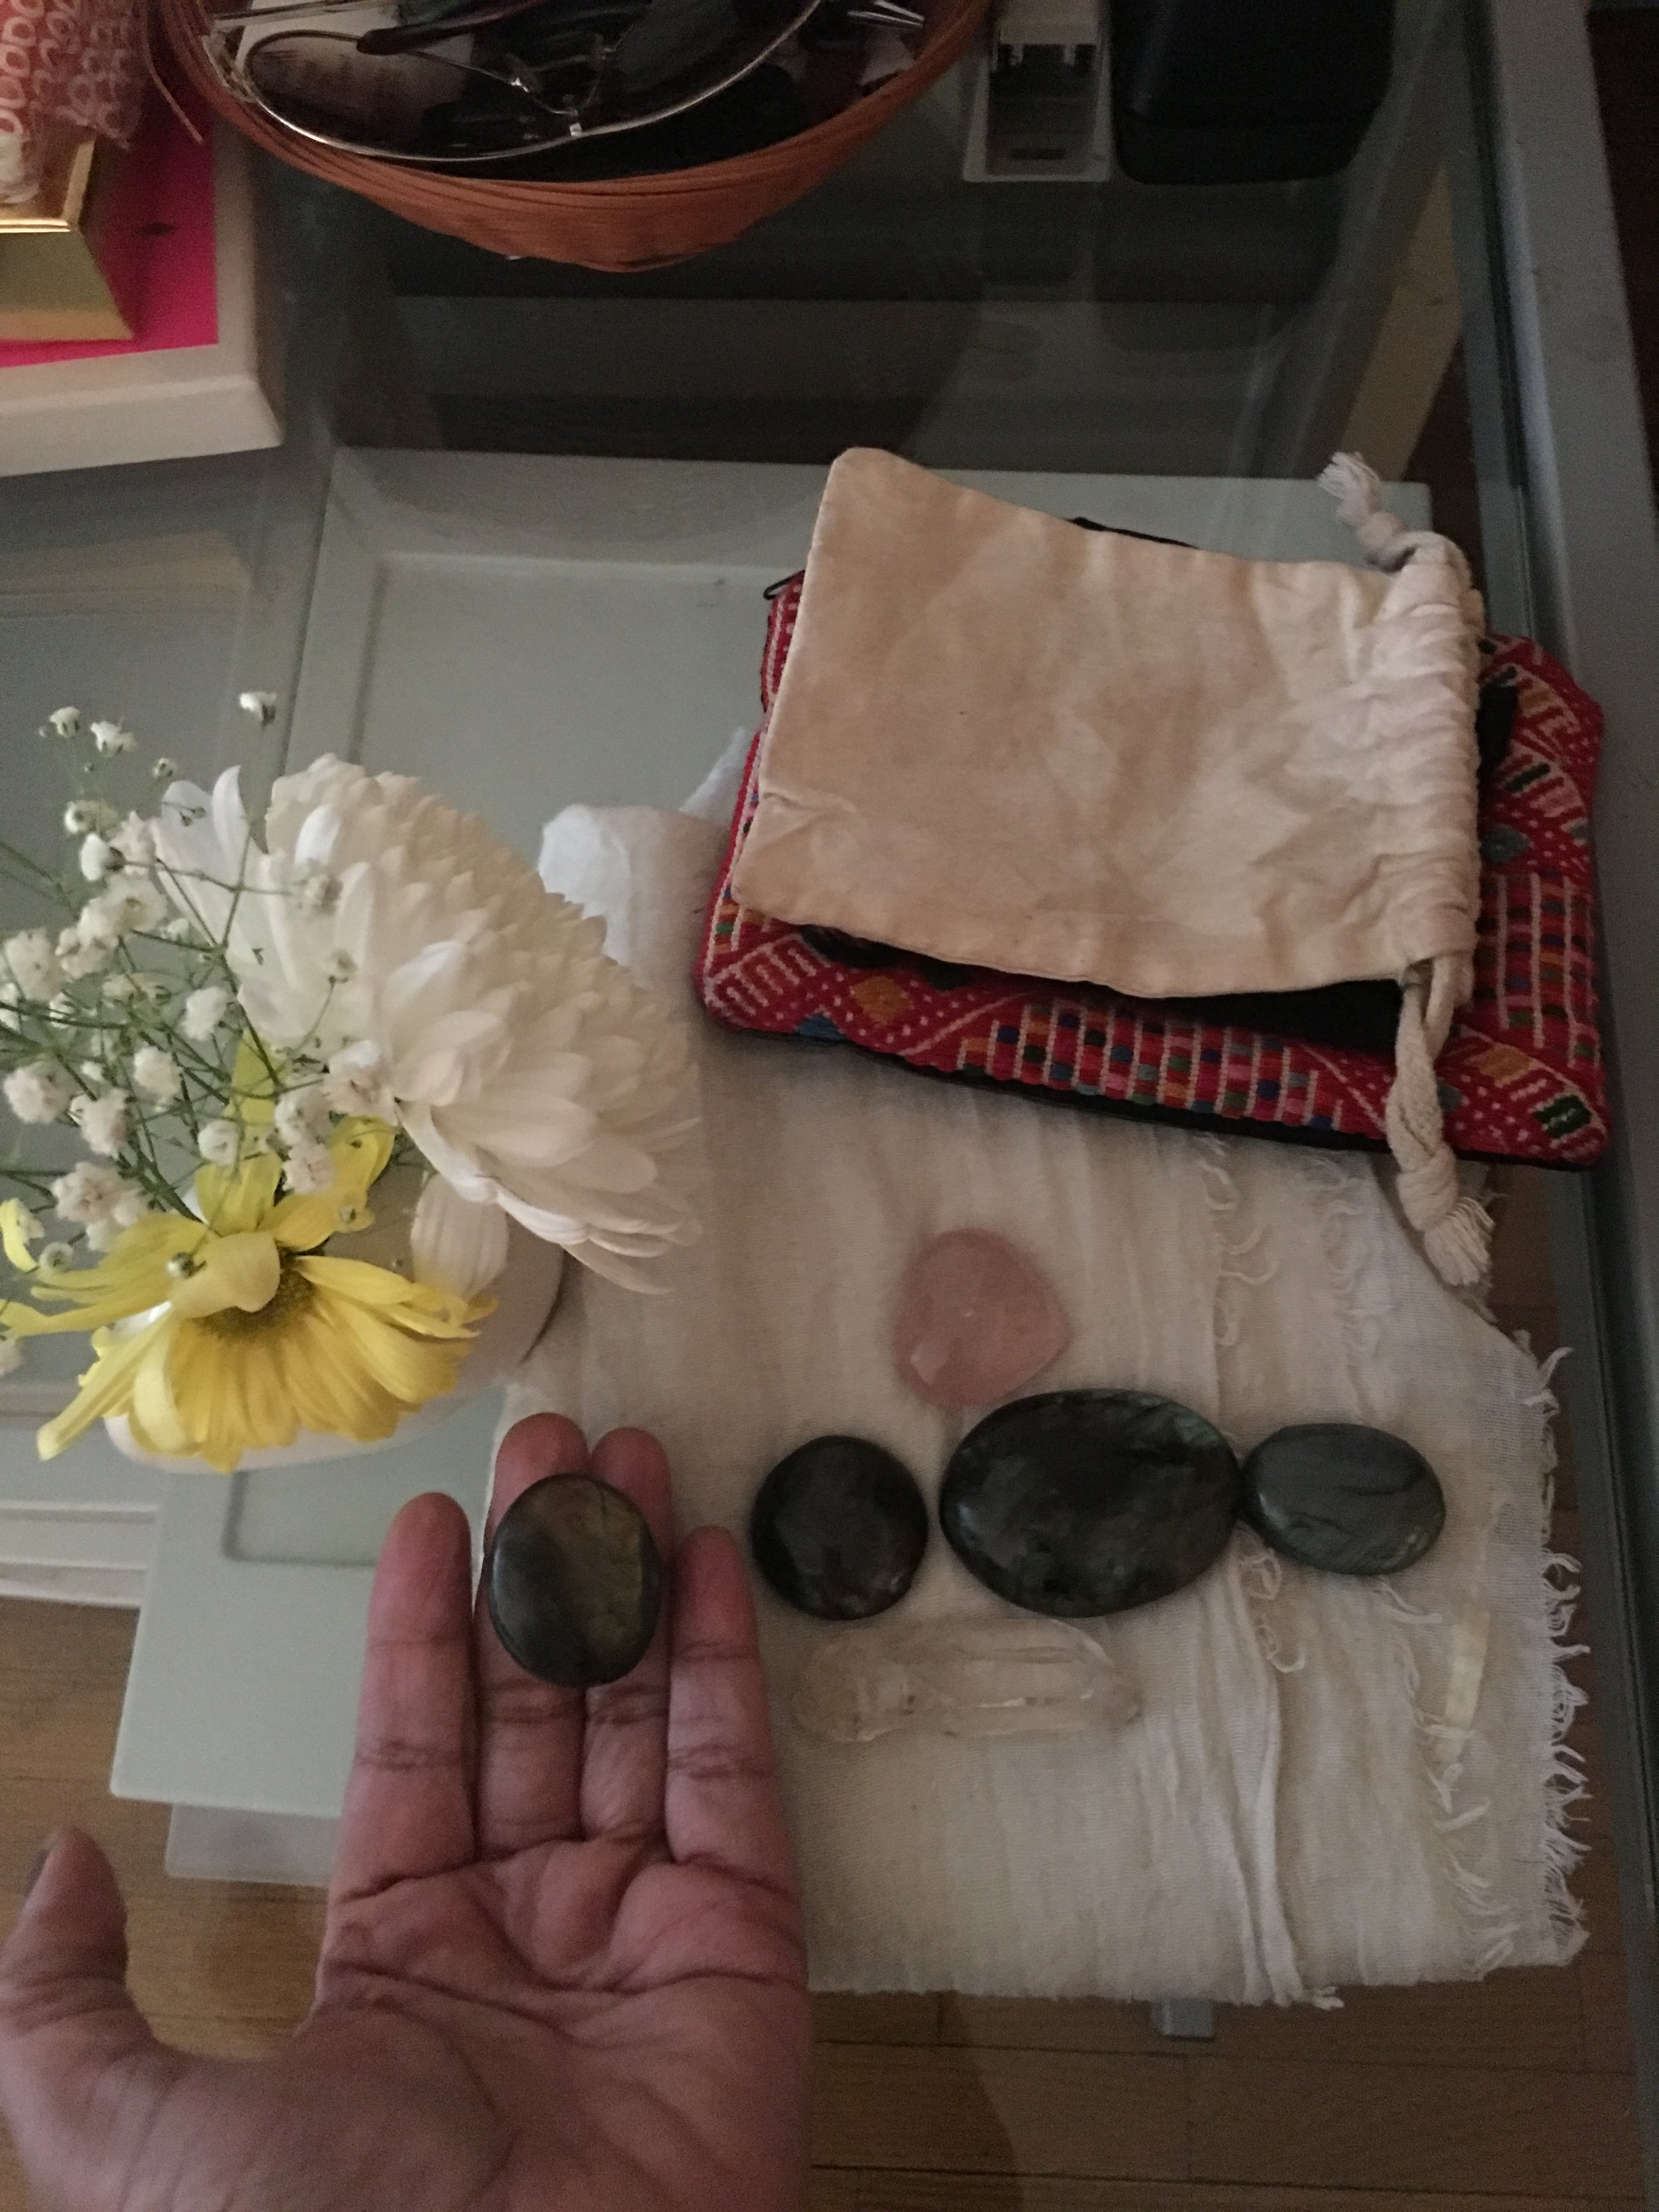 Some of Ms. J.'s swag that included healing crystals.